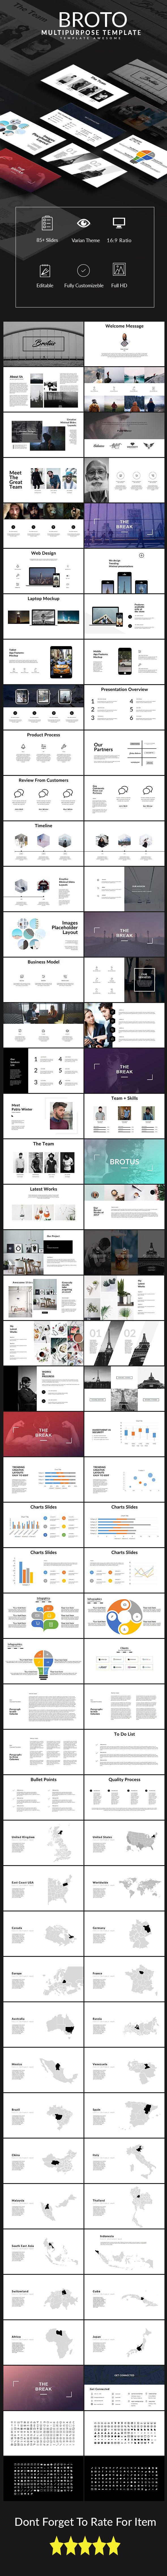 Brotus Multipurpose PowerPoint Template